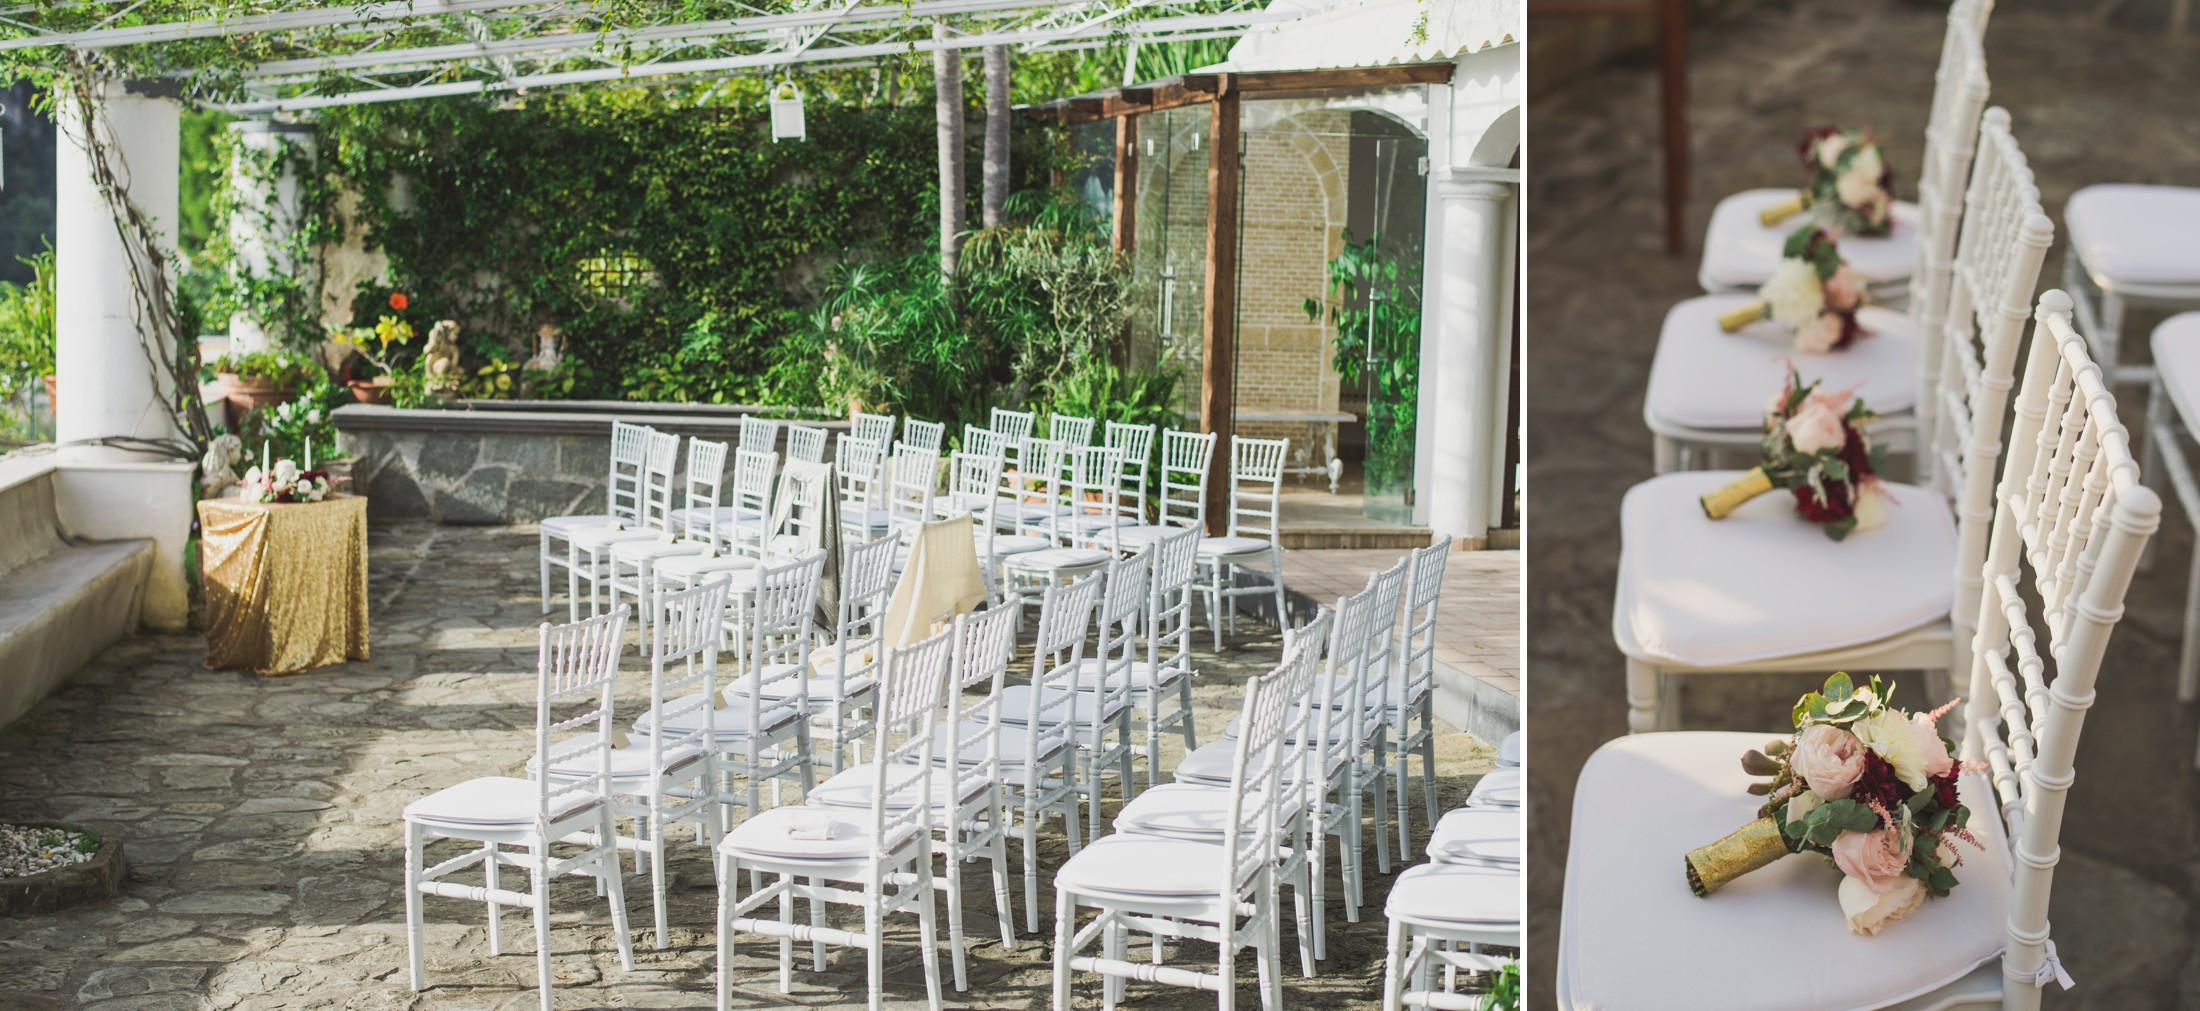 positano wedding ceremony setting details